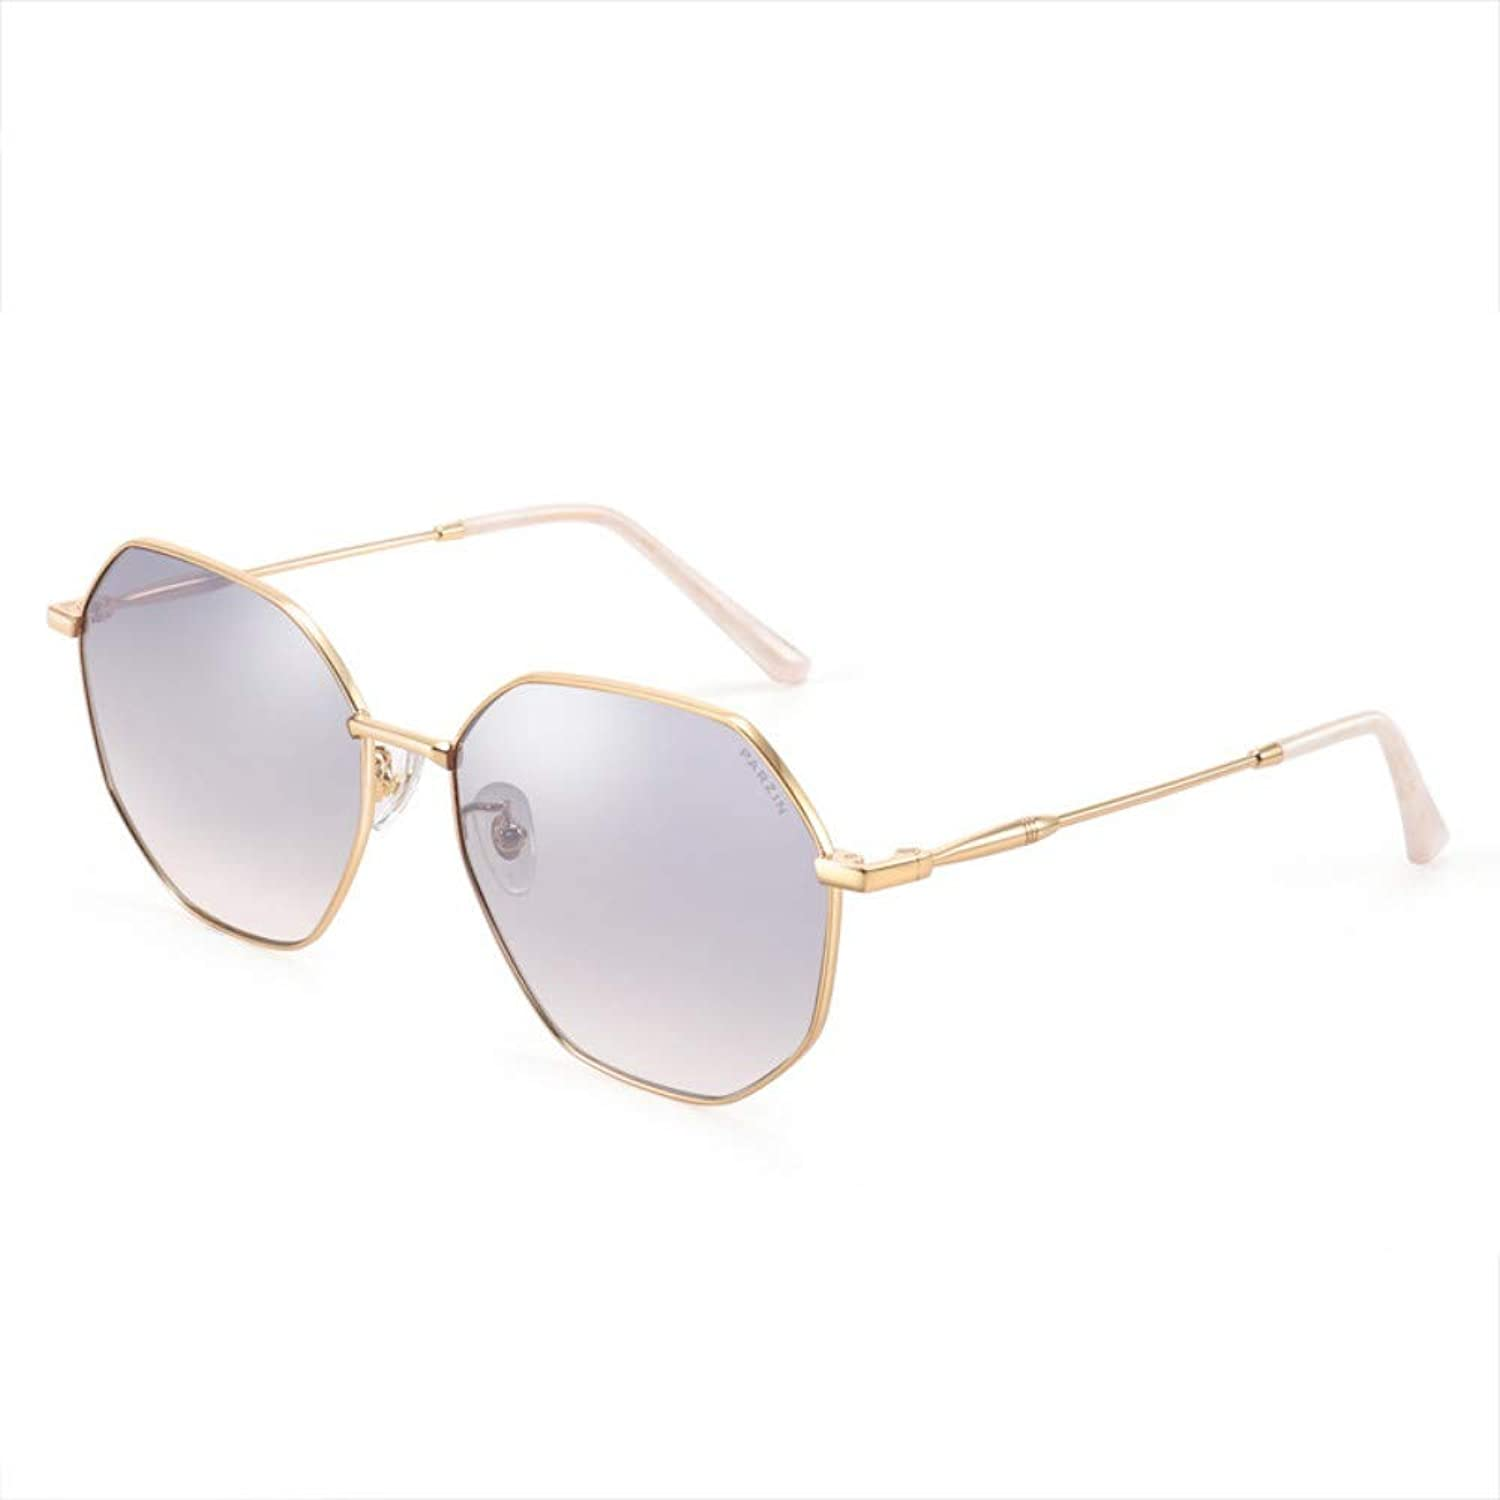 Fashion Sunglasses Female Metal Frame Polygon Small Face Sunglasses Trend gold Frame Reflective Film Mercury Film